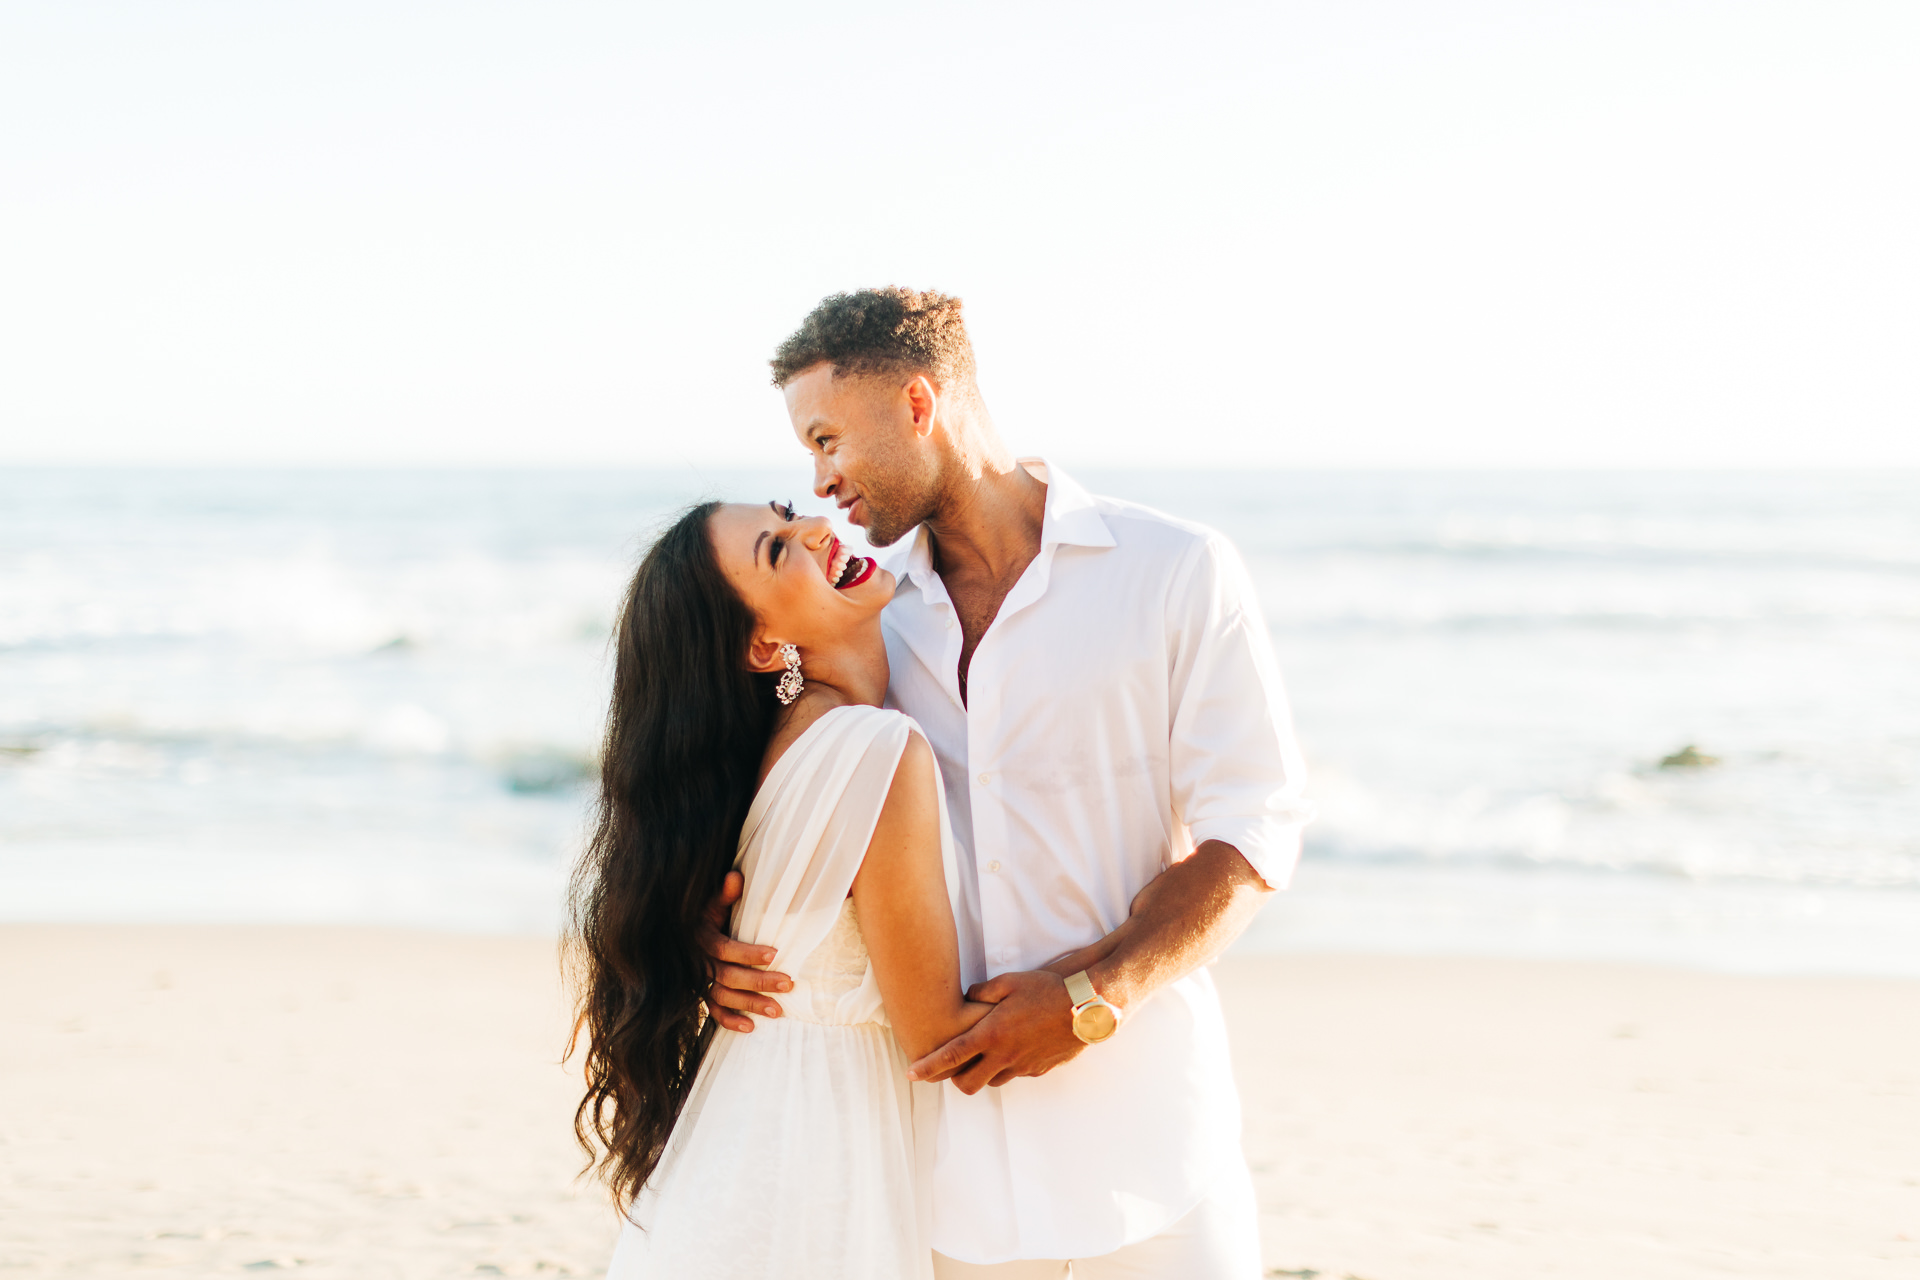 Nanis&Jay-Crystal-Cove-Beach-Engagement-Session-Clarisse-Rae-Photo-&-Video-Orange-County-Wedding-Photographer-&-Videographer_31.jpg